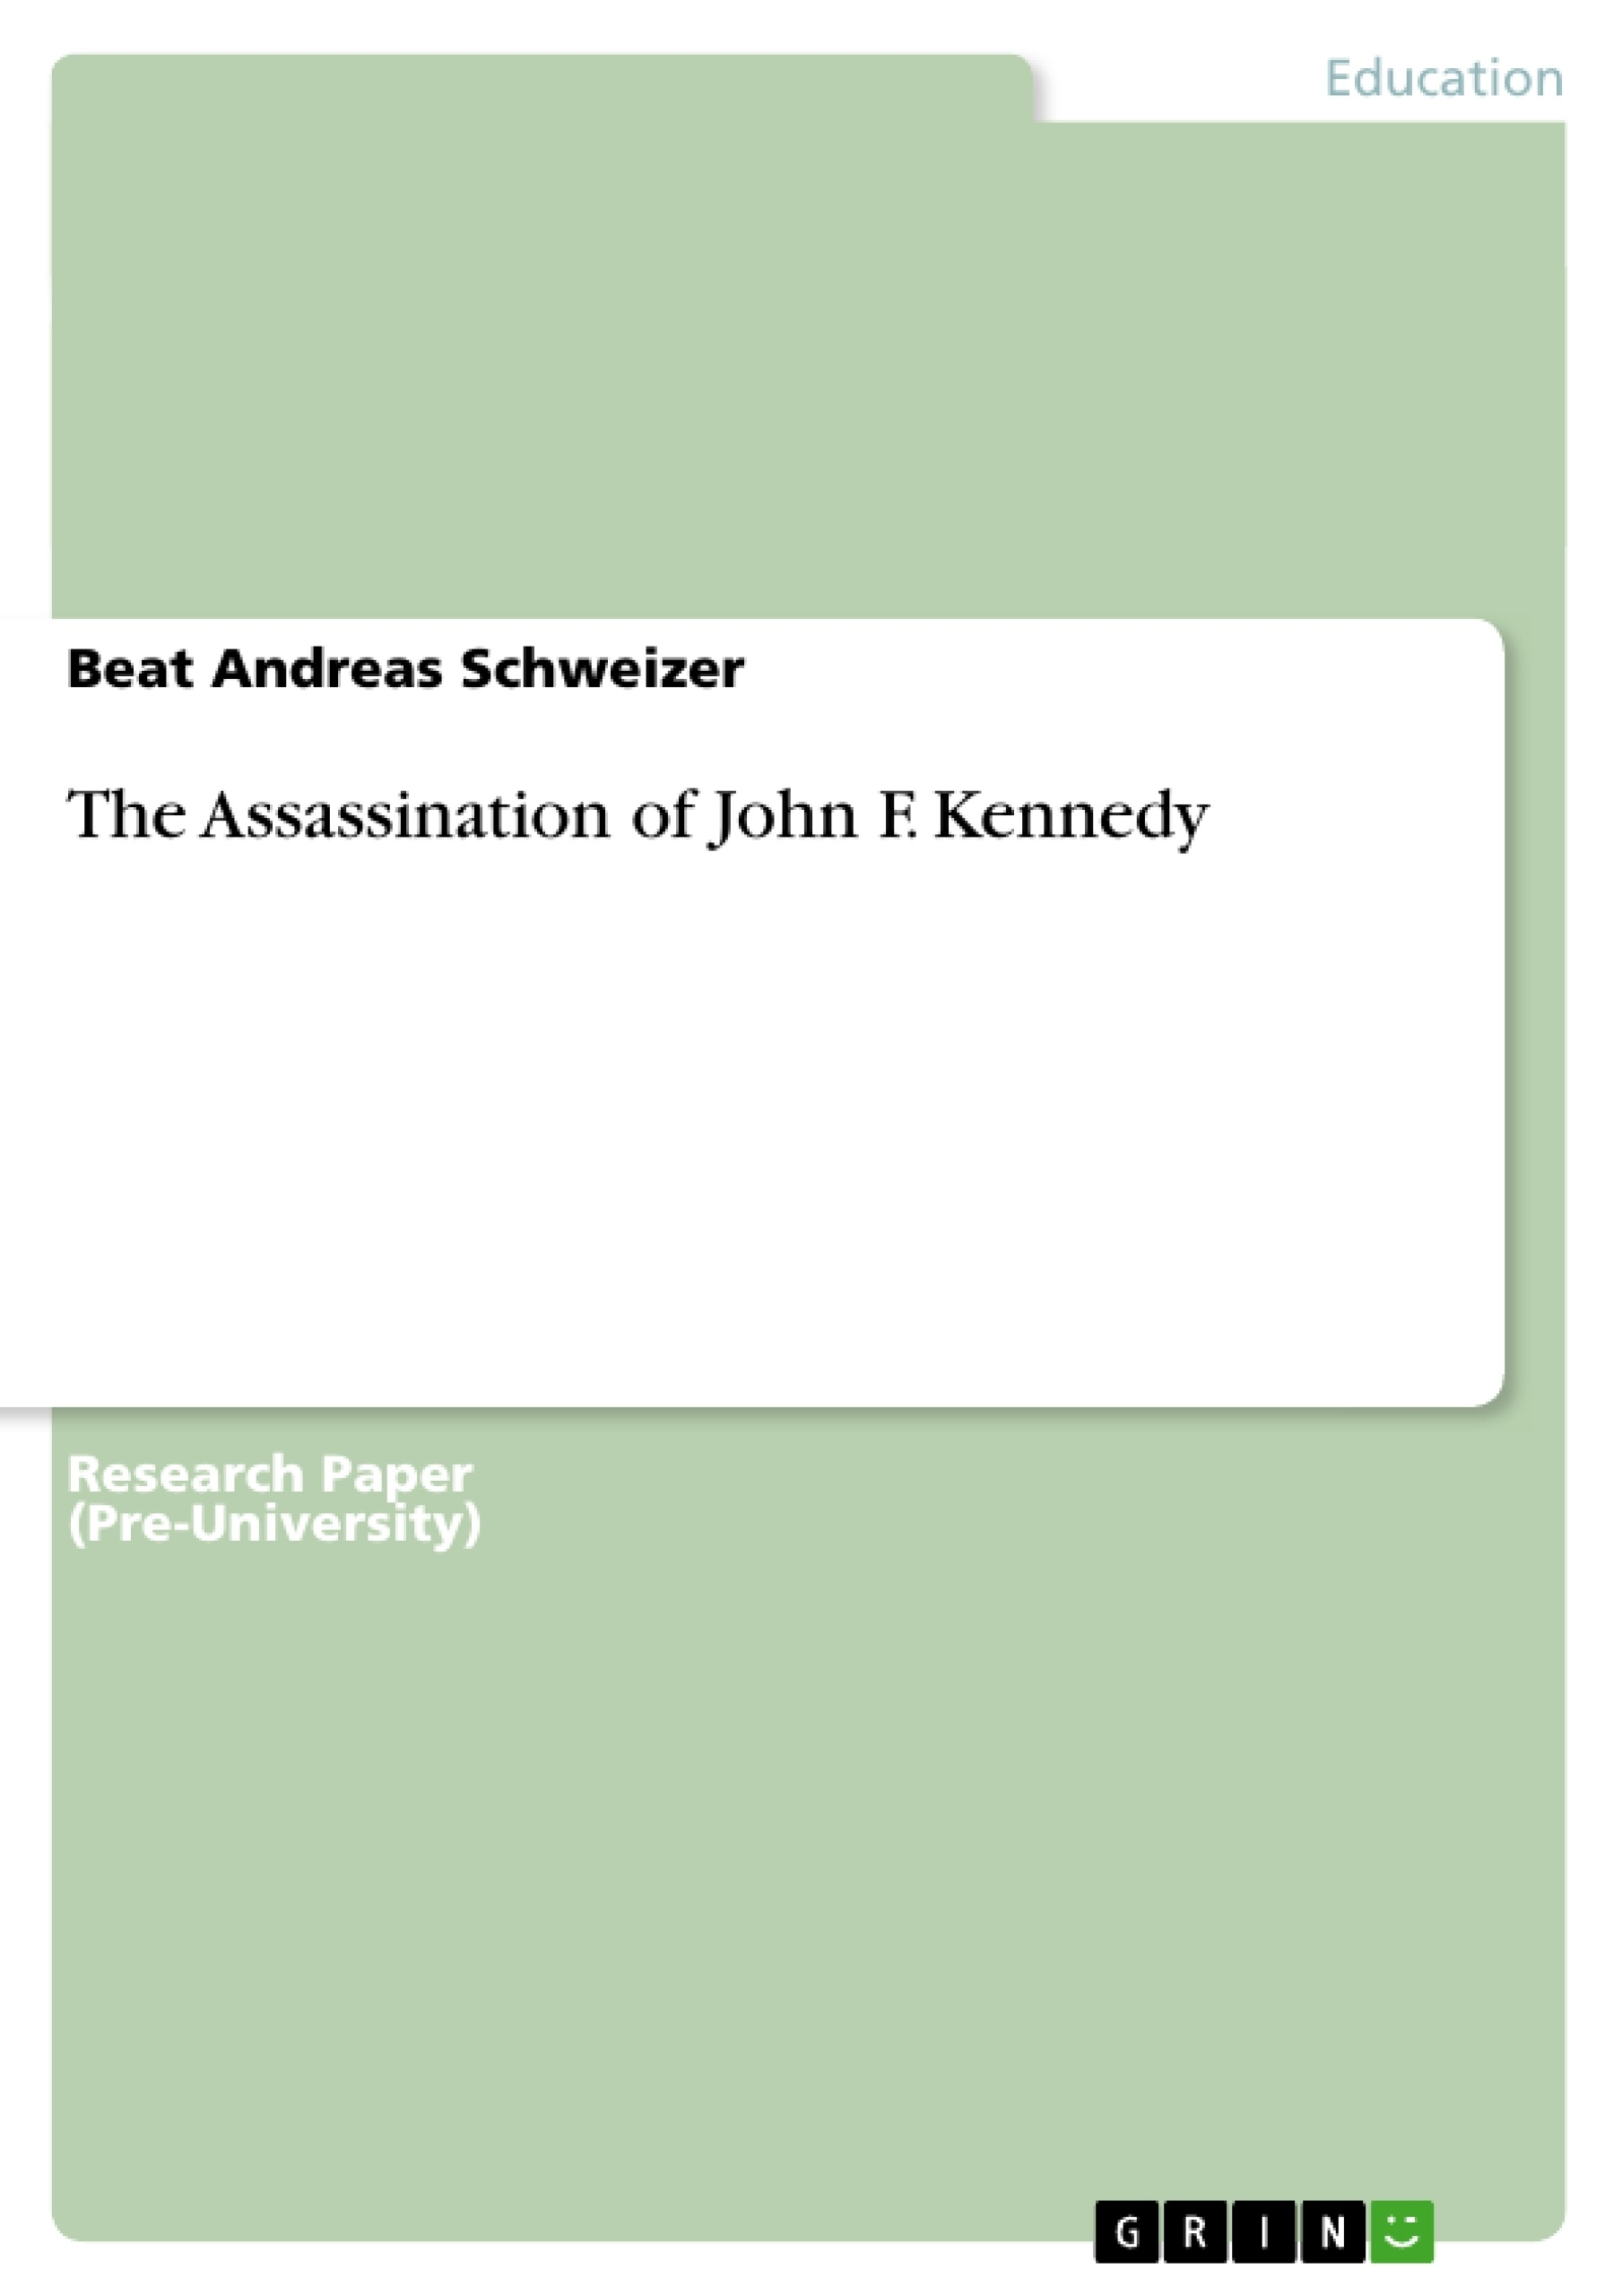 Title: The Assassination of John F. Kennedy